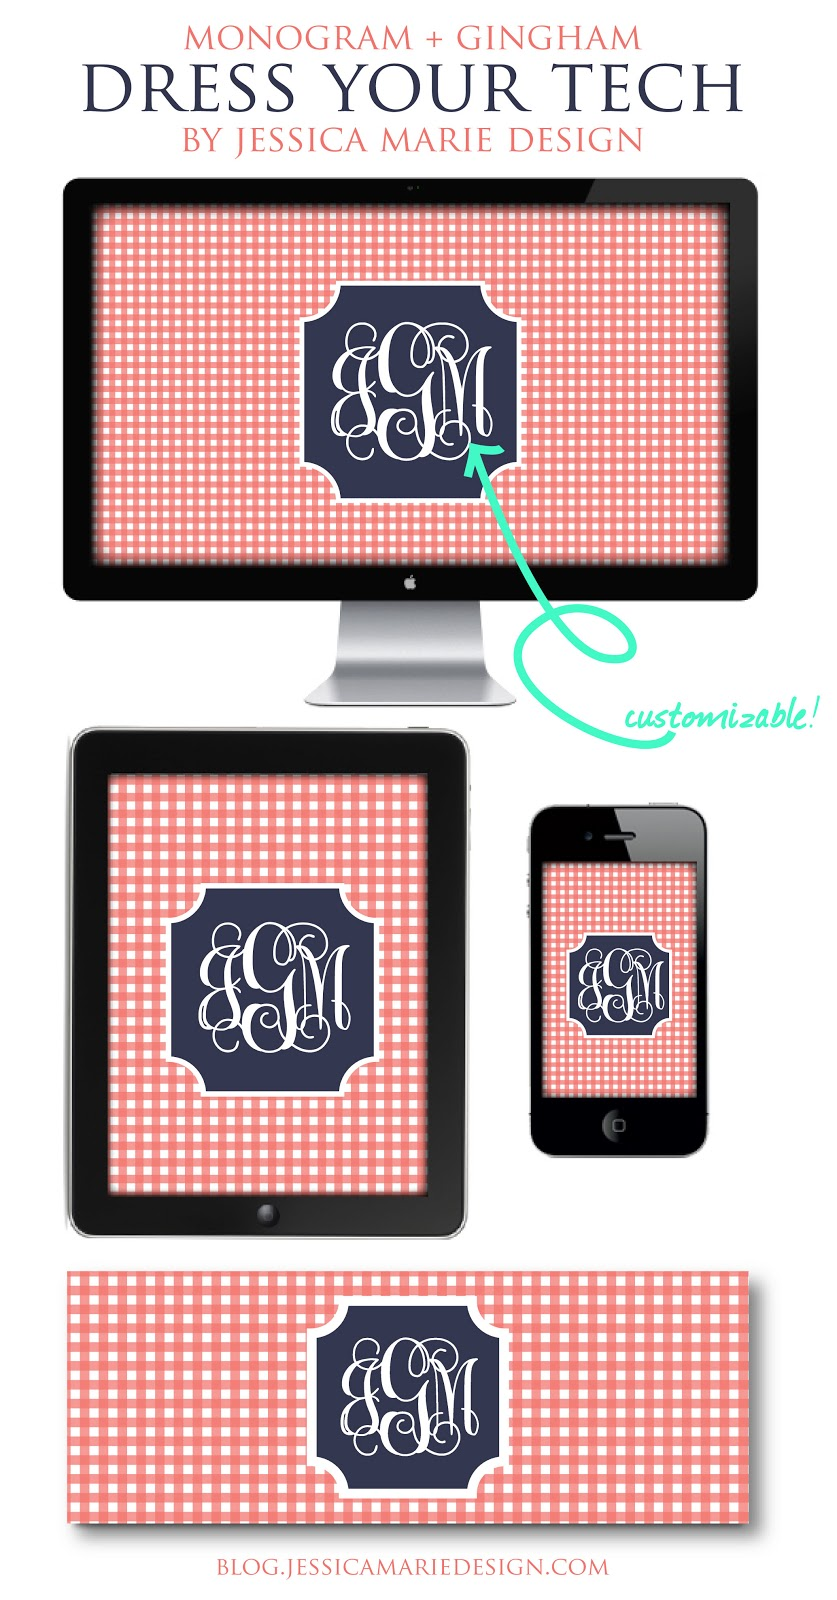 Download these free monogram + gingham dress your tech wallpapers from Jessica Marie Design!